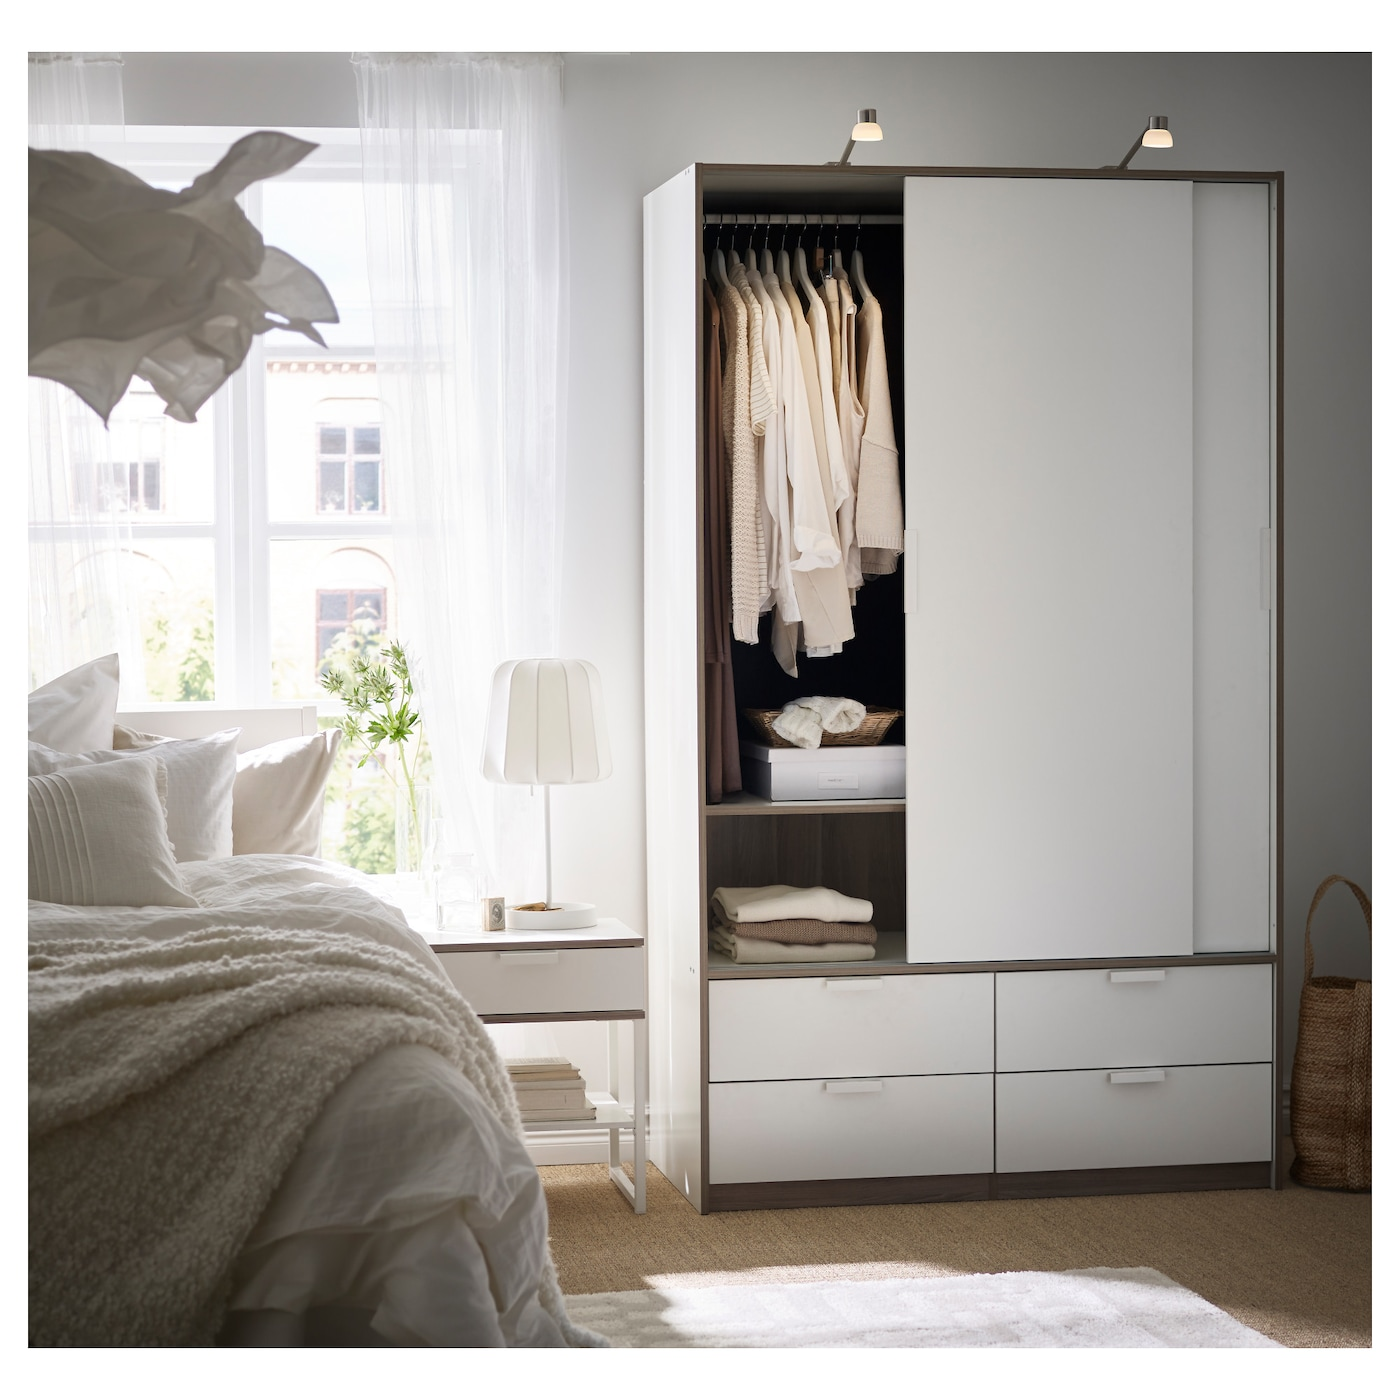 Interior sliding doors ikea - Ikea Trysil Wardrobe W Sliding Doors4 Drawers Smooth Running Drawers With Pullout Interior Sliding Doors For Bathroom